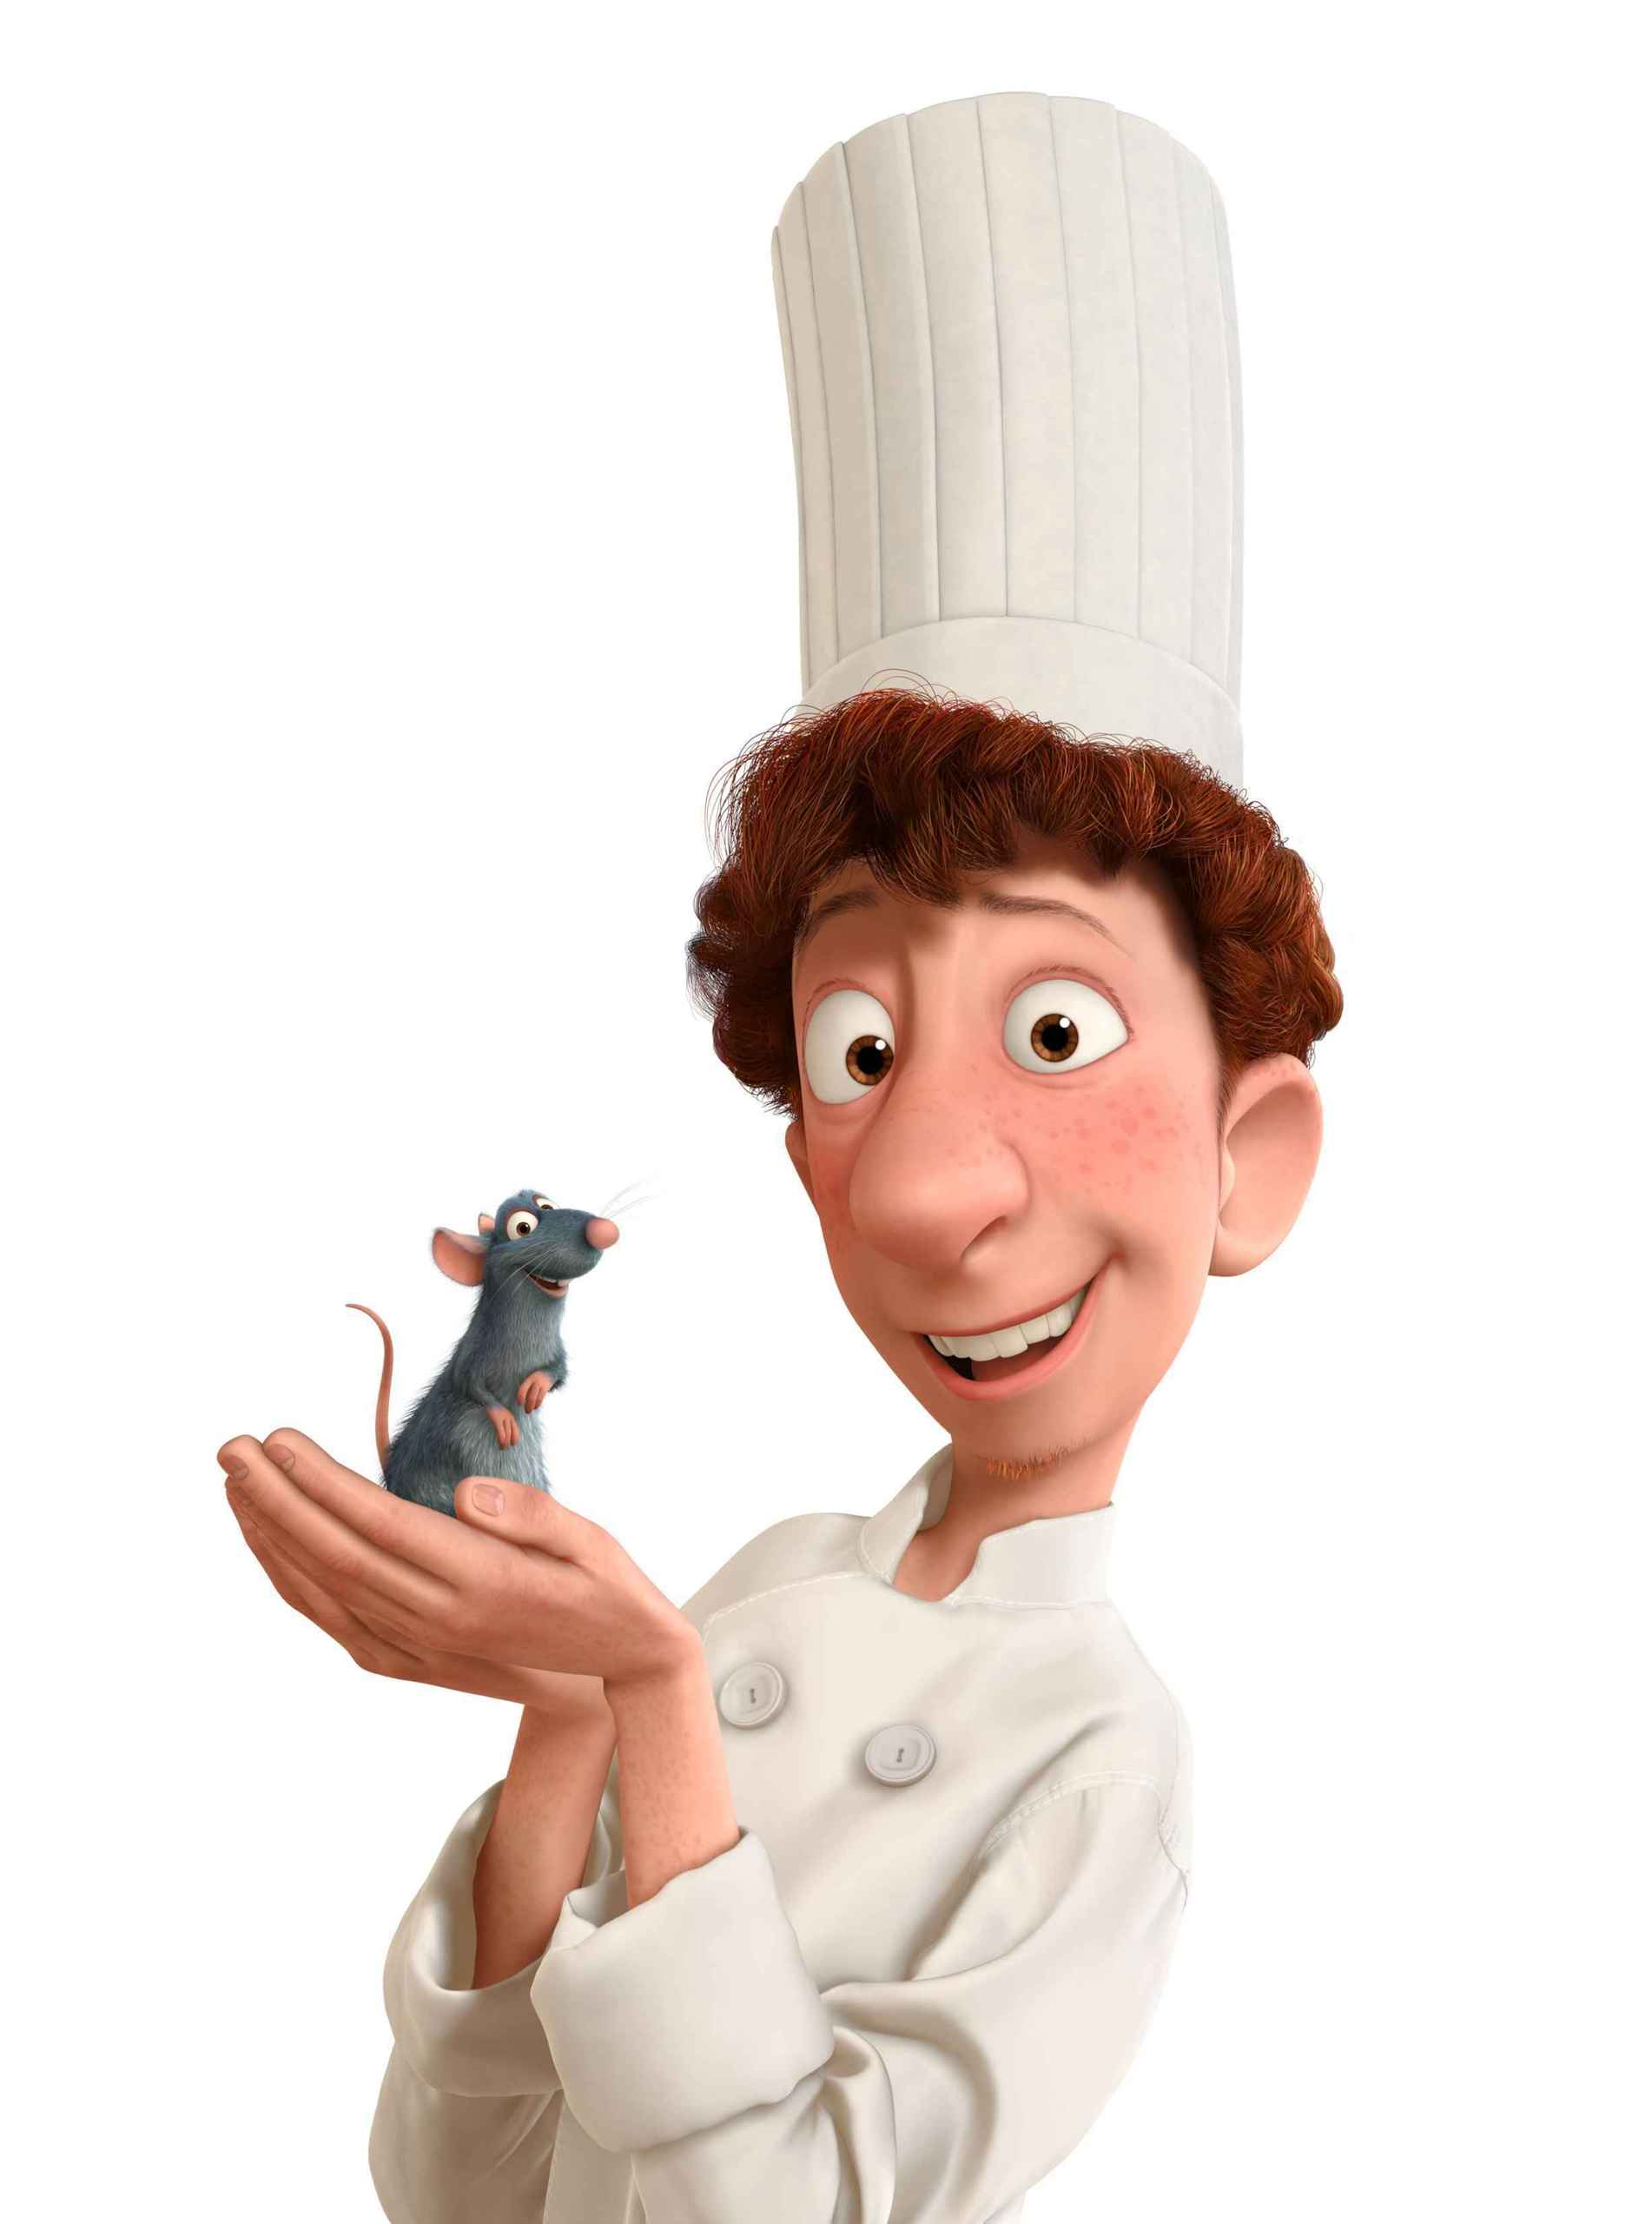 http://i2.wp.com/images1.fanpop.com/images/photos/1800000/Ratatouille-Production-Stills-ratatouille-1847049-1902-2560.jpg